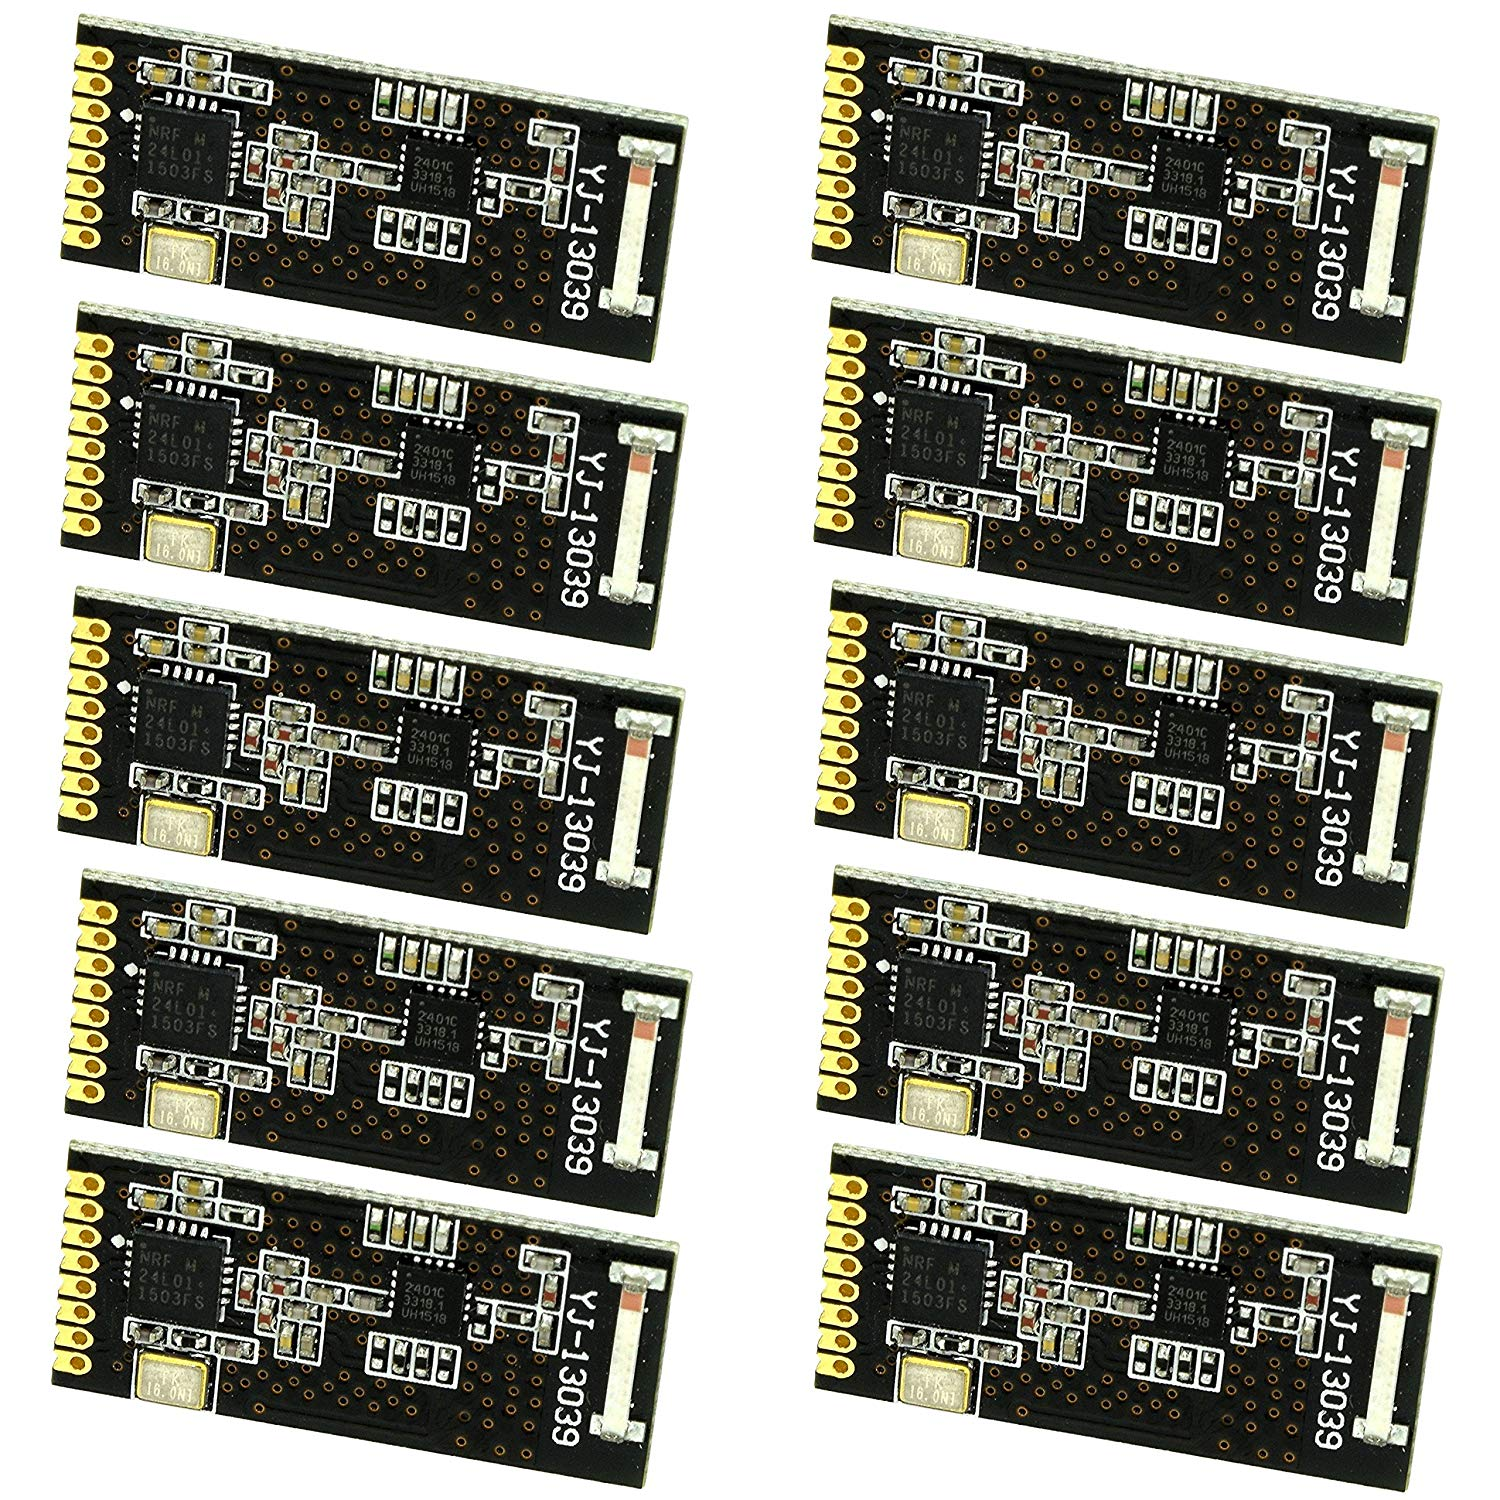 10pcs Miniature Long Range nRF24L01 Transceiver PA + LNA (with a single line of pins) by Optimus Electric